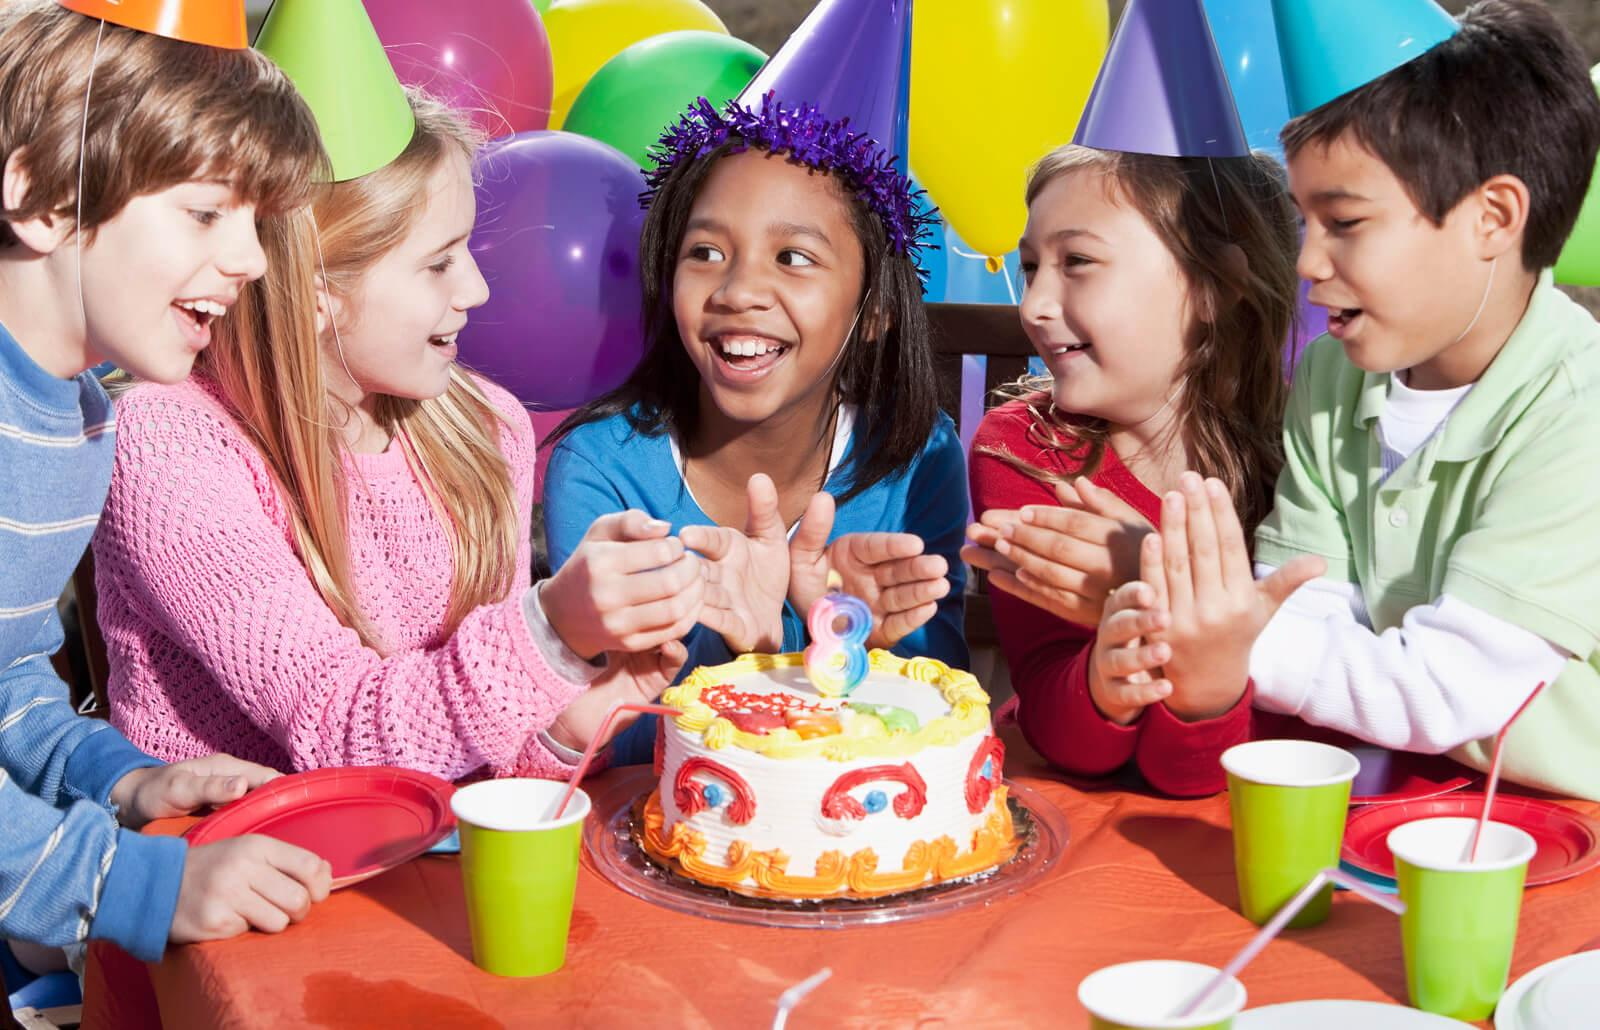 group of kids at a birthday party